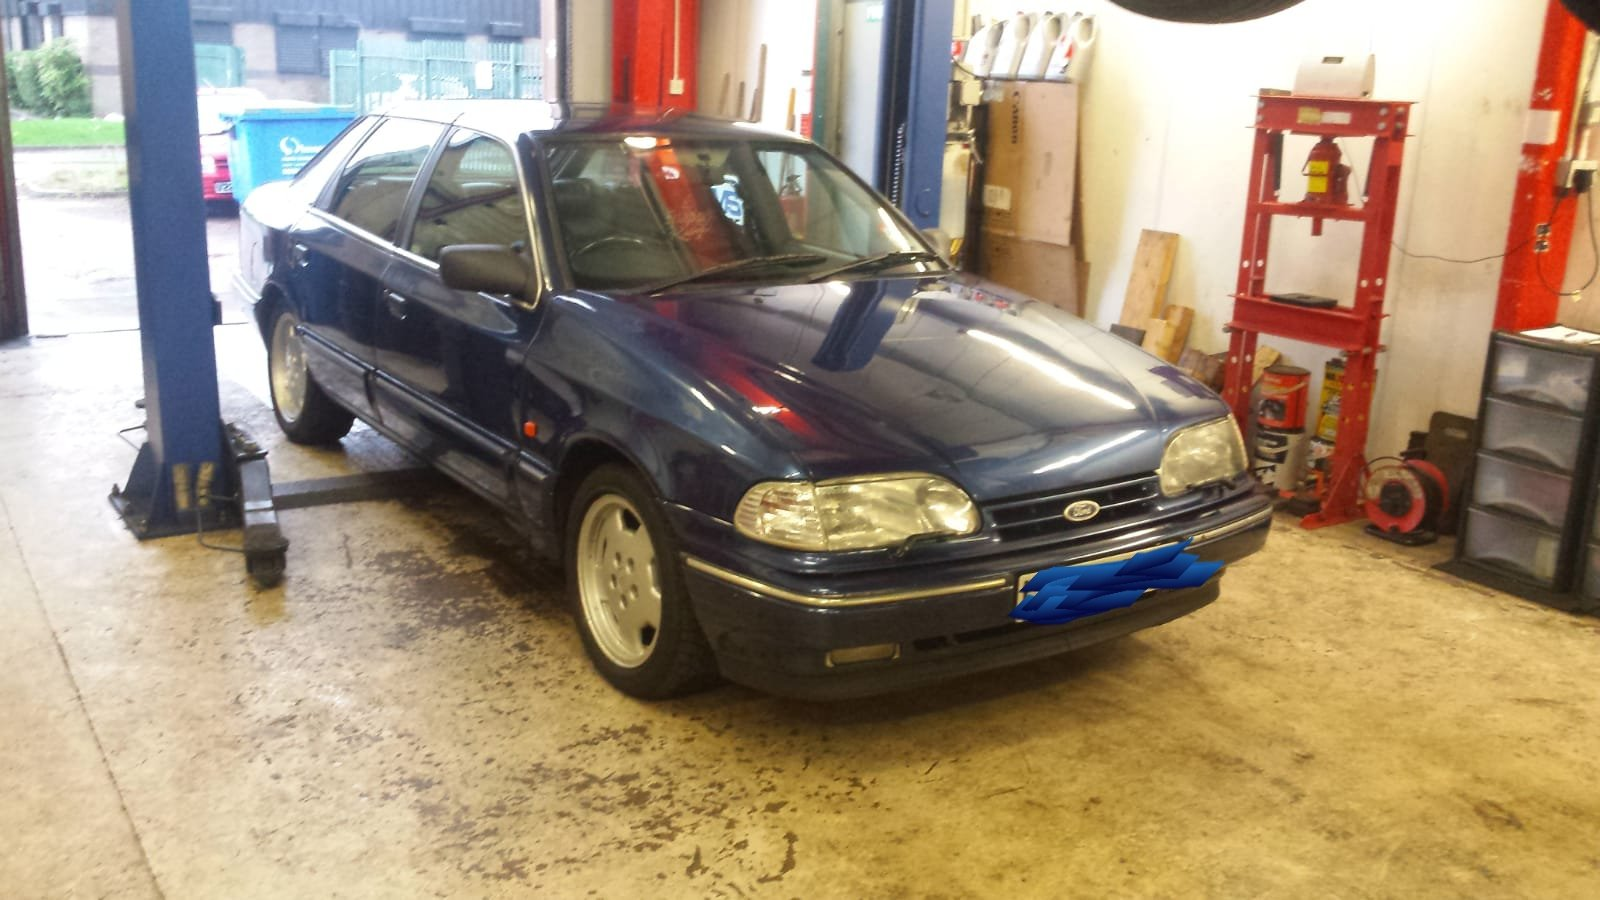 1993 ford granada scorpio 24v For Sale (picture 1 of 1)